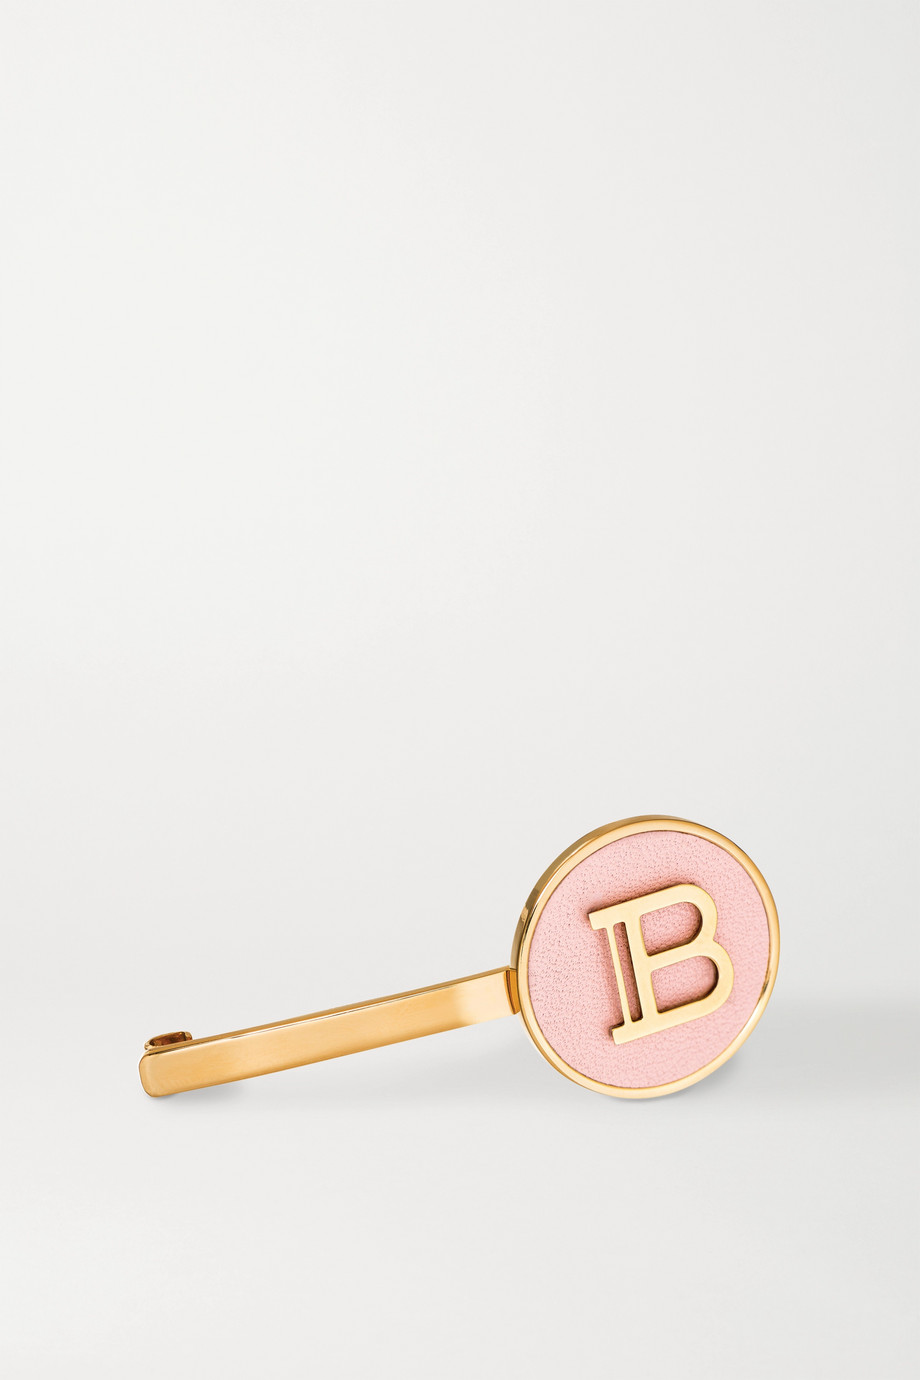 Balmain Paris Hair Couture Gold-plated and leather hair slide